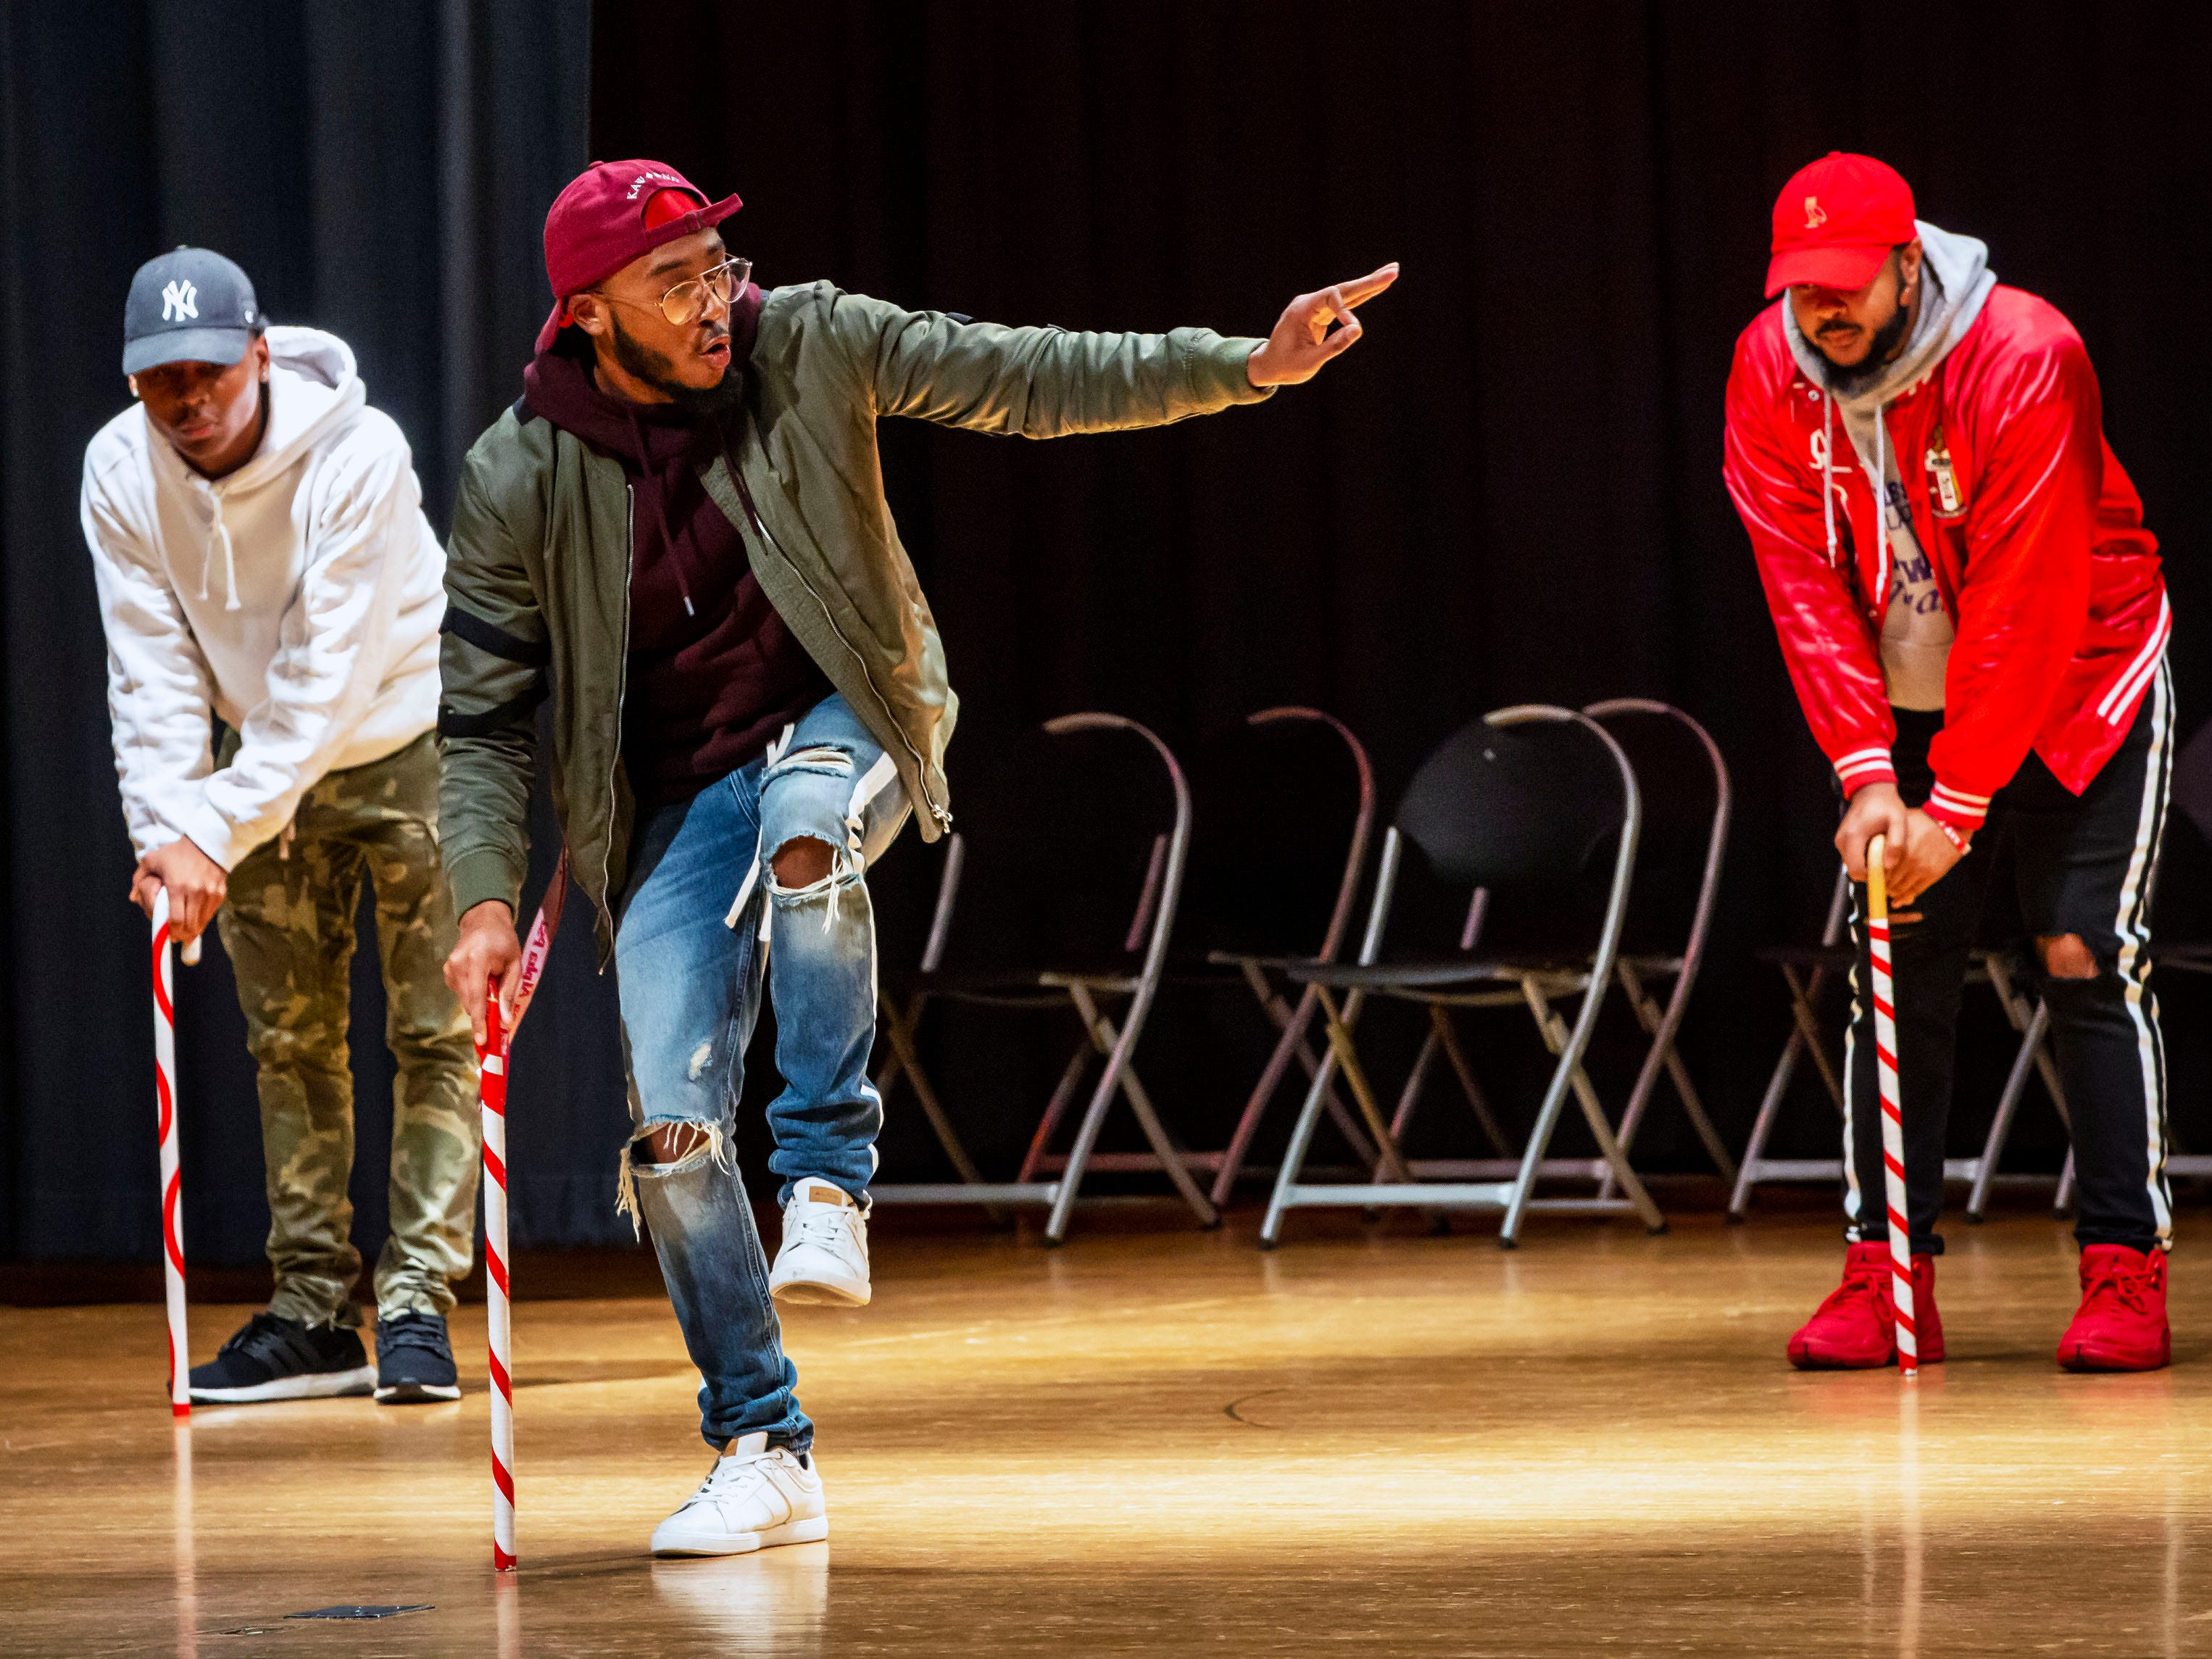 Members of the Kappa Alpha Psi fraternity from MTSU perform at the African-American Cultural Celebration held at Patterson Park Community Center.